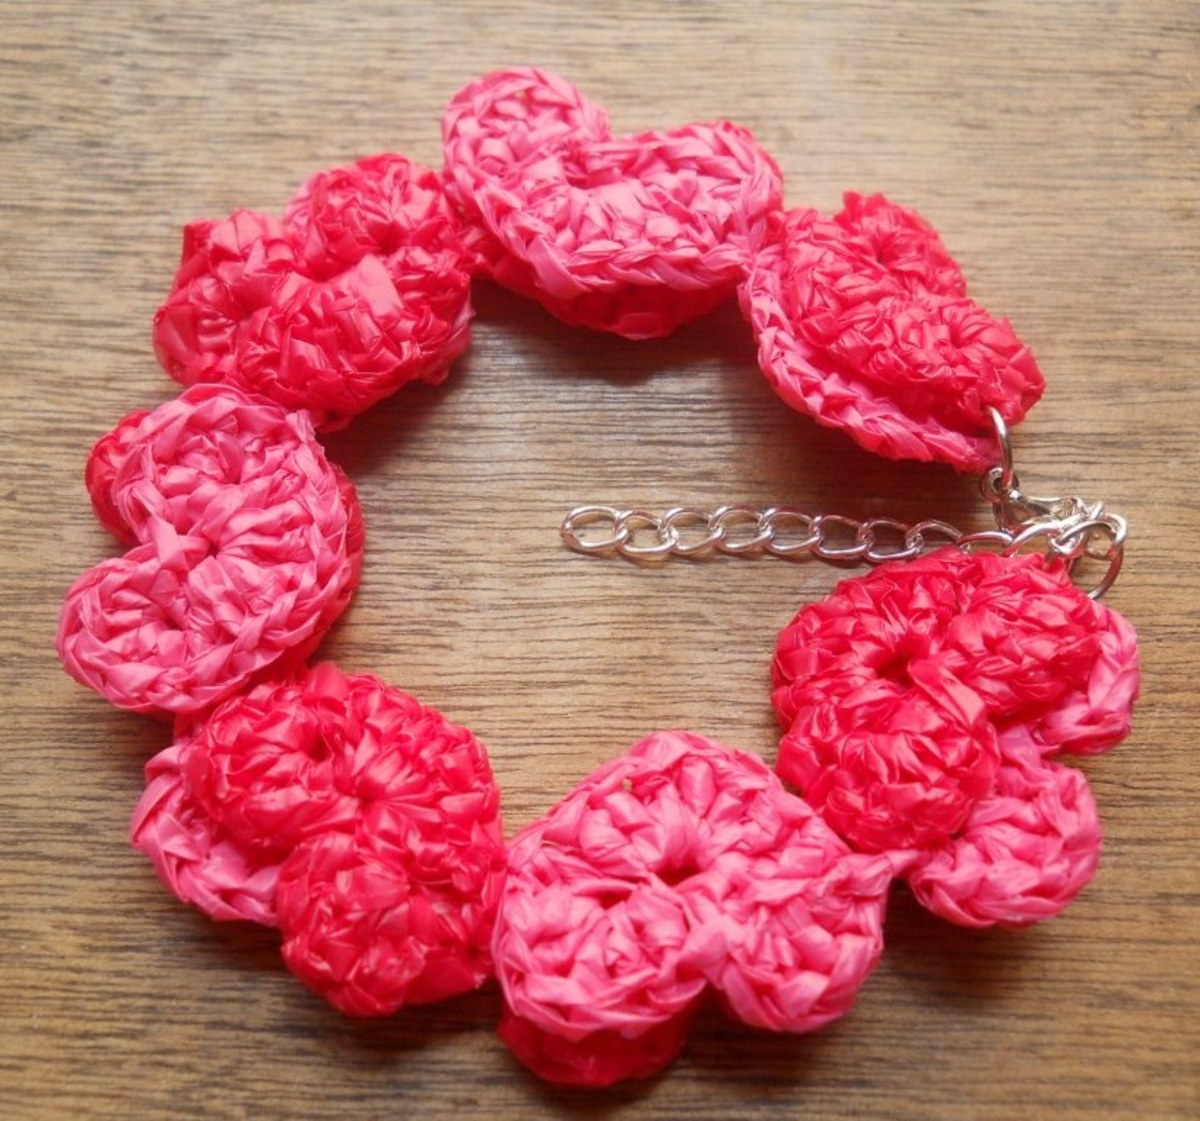 Chains of Hearts Crochet Bracelet (Pattern With Step-by-Step Instructions)